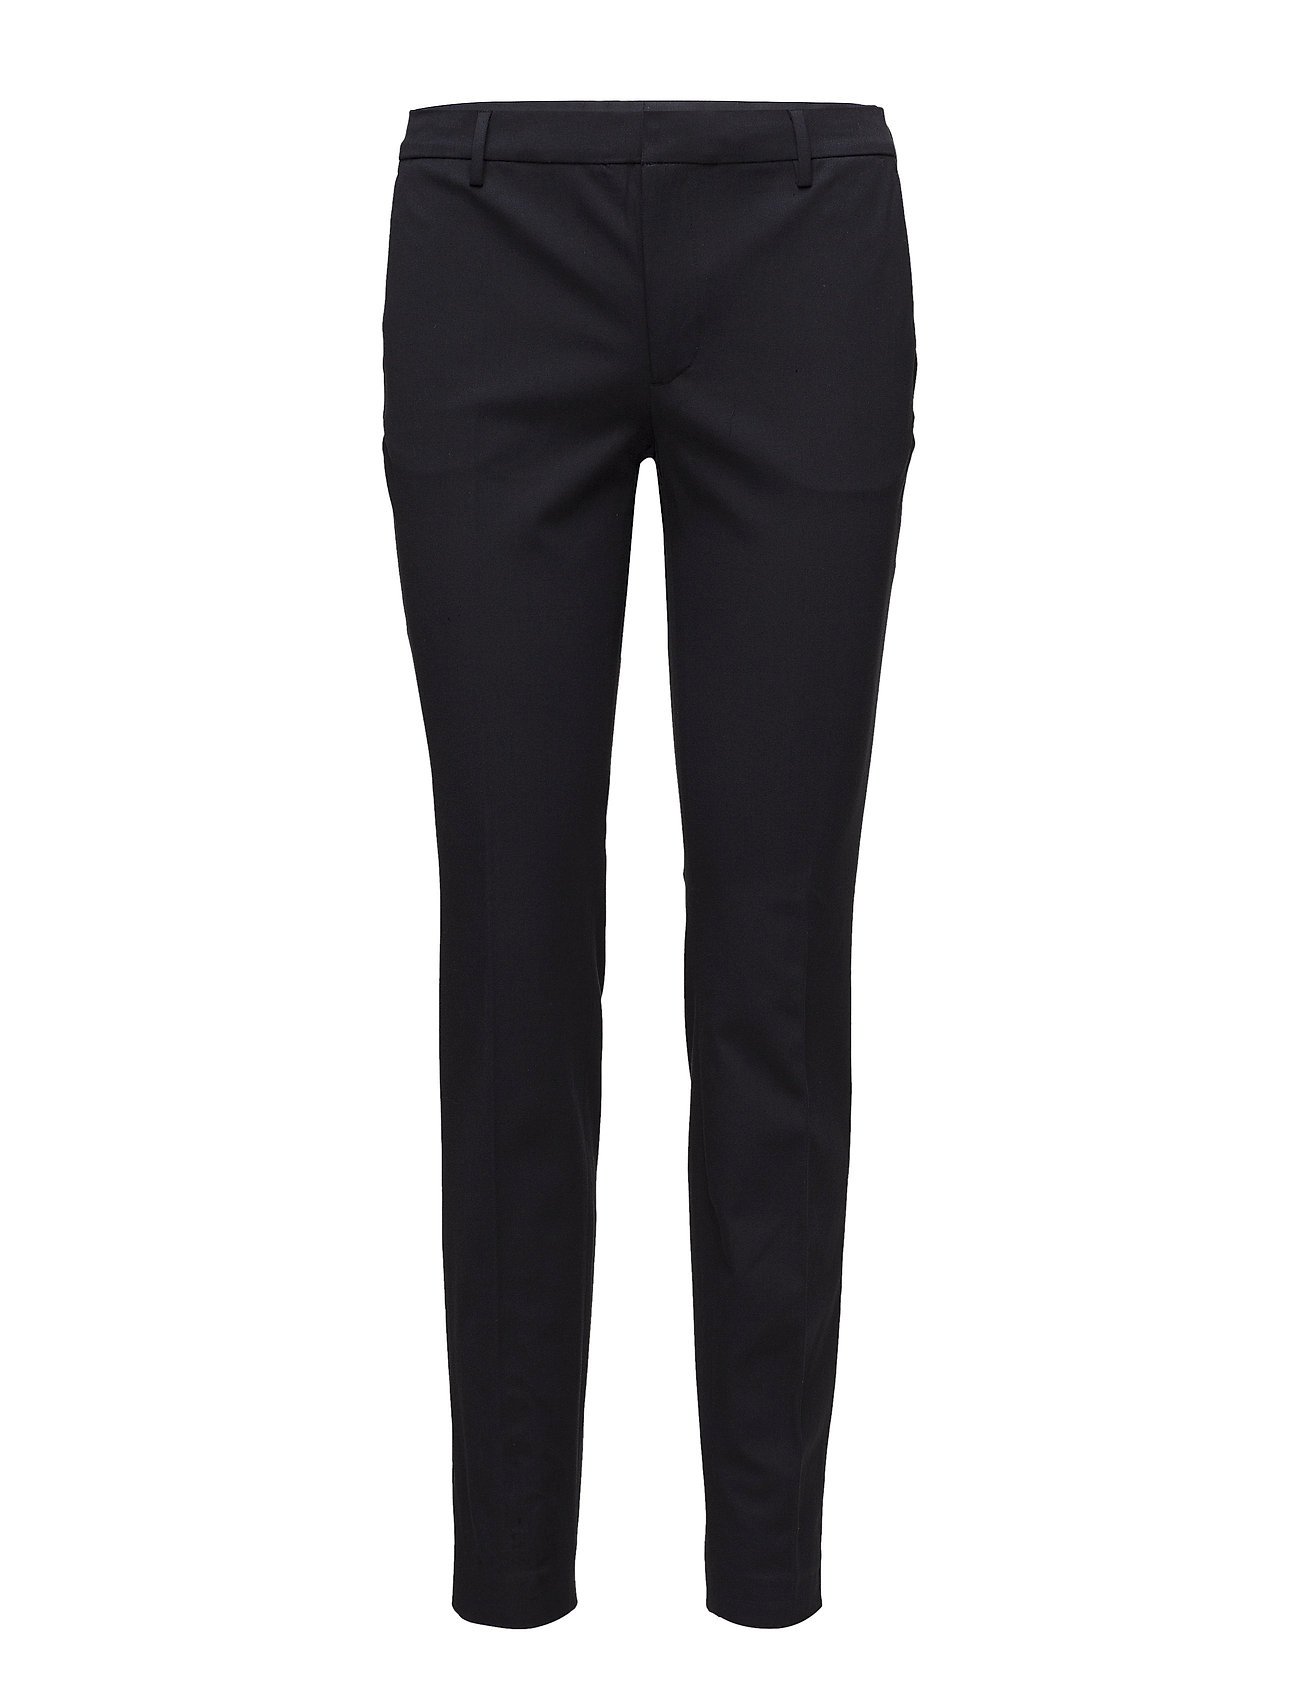 Filippa K Sophia Cotton Stretch Trousers - NAVY